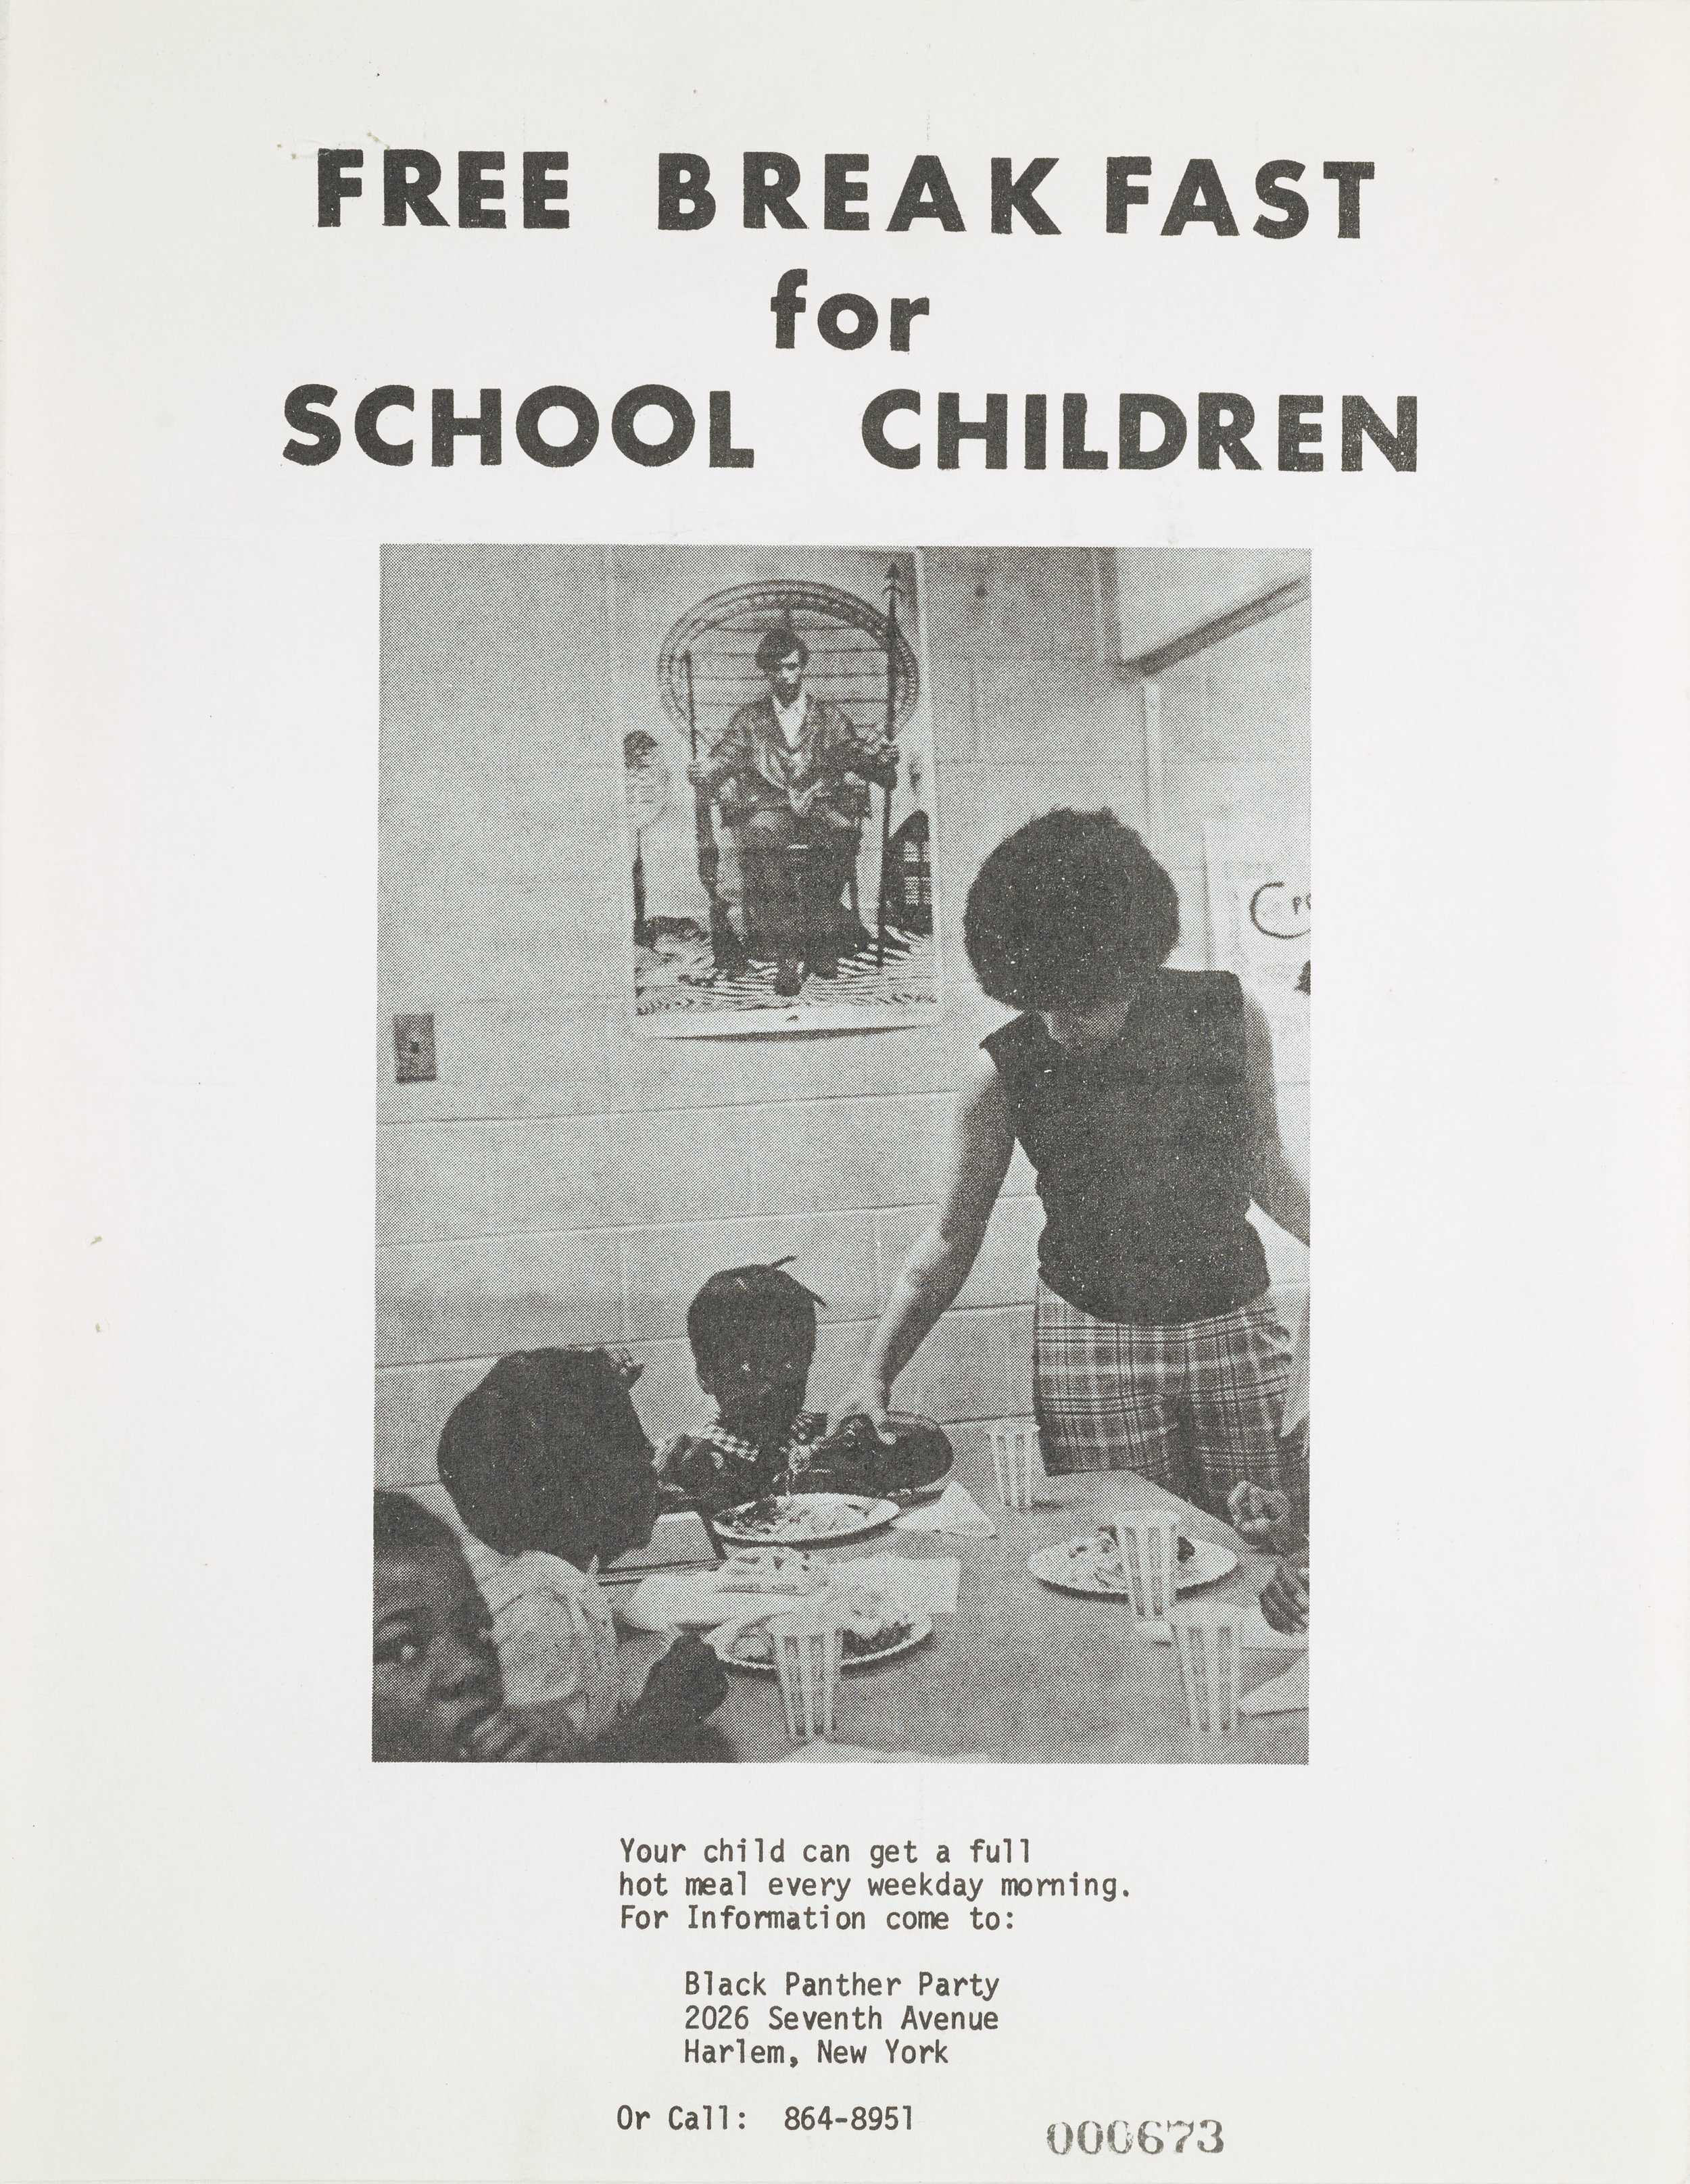 Black Panther Free Breakfast for School Children, 1969